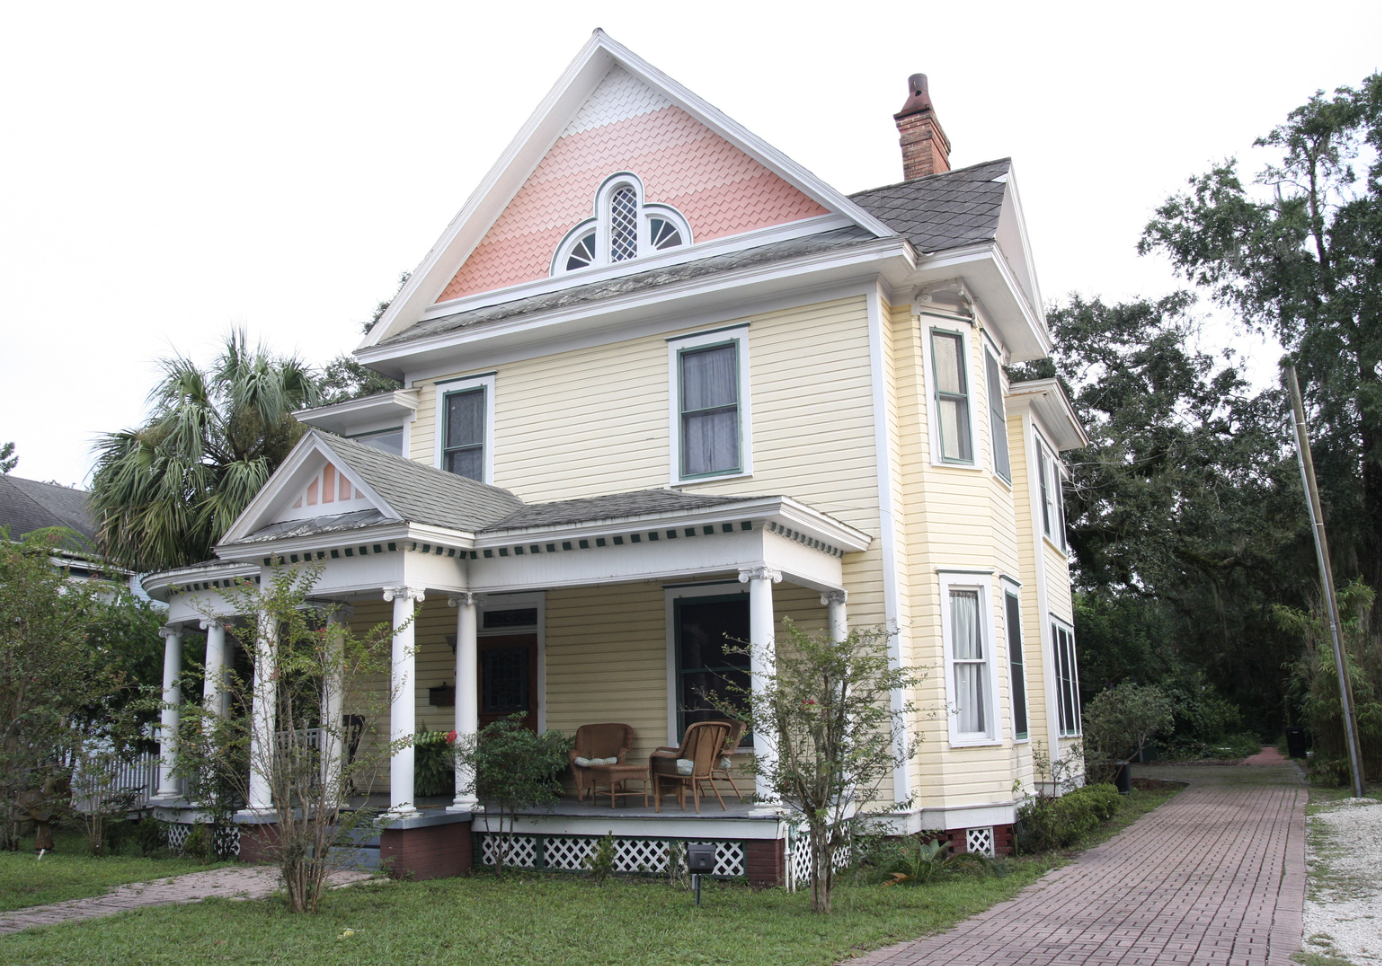 Gentle-Journeys-Midwives-Florida-Birth-Center-house.png